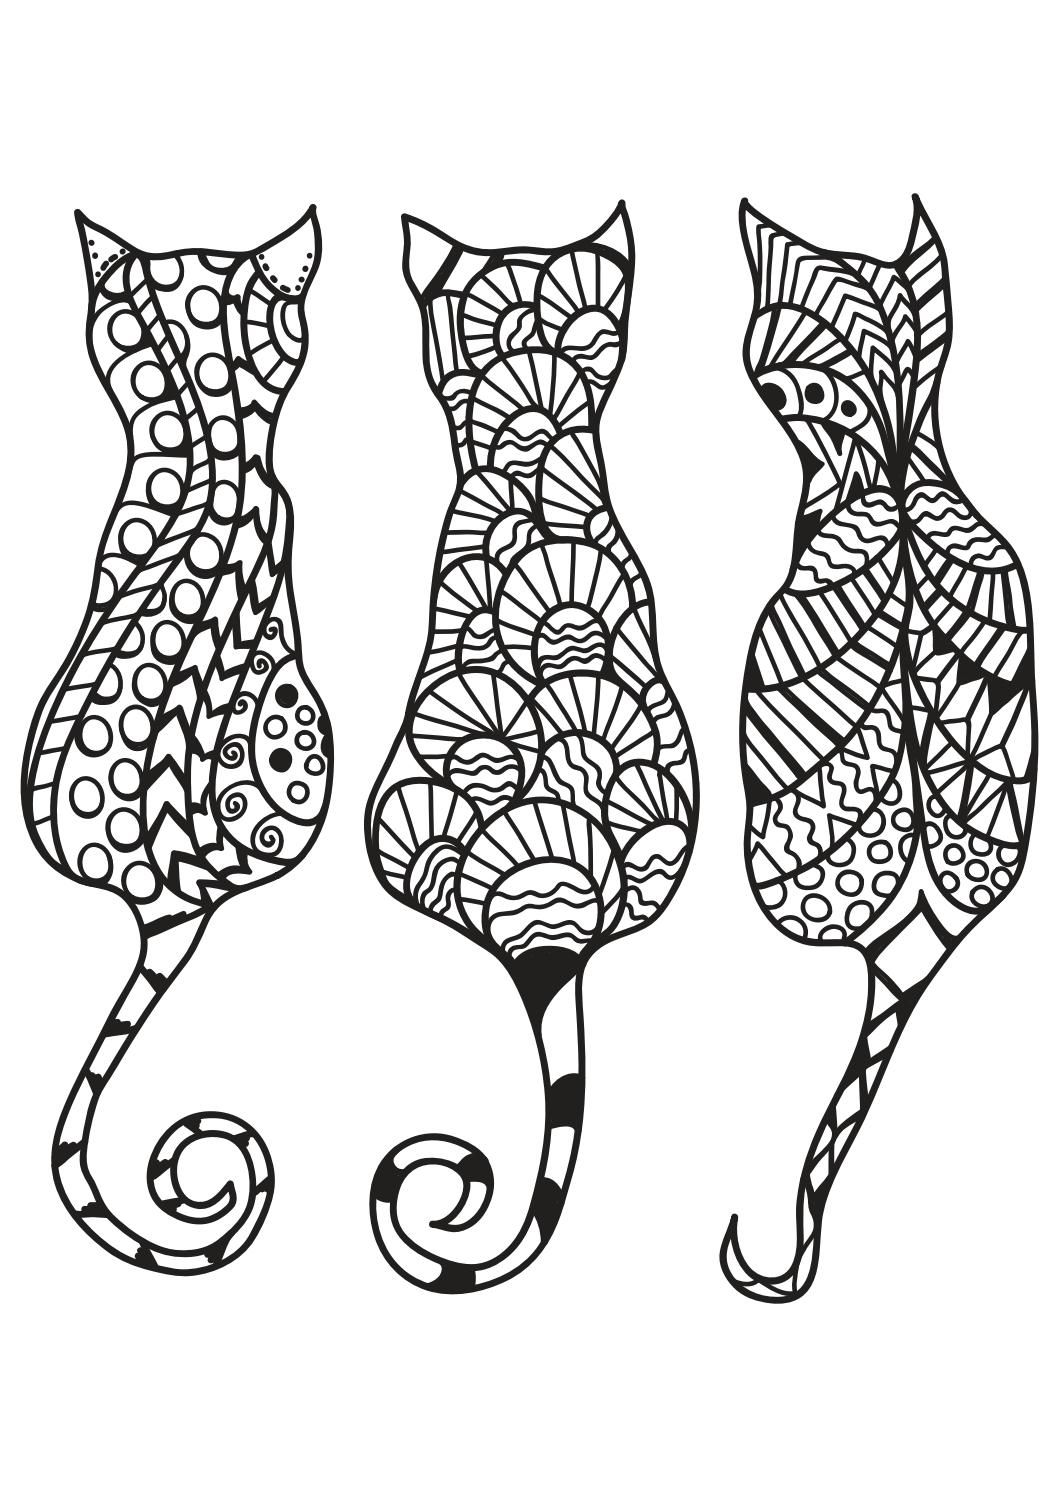 Cat Coloring Pages For Adults Printable Coloring Book Cat Coloring Page Cat Coloring Book Mandala Coloring Pages